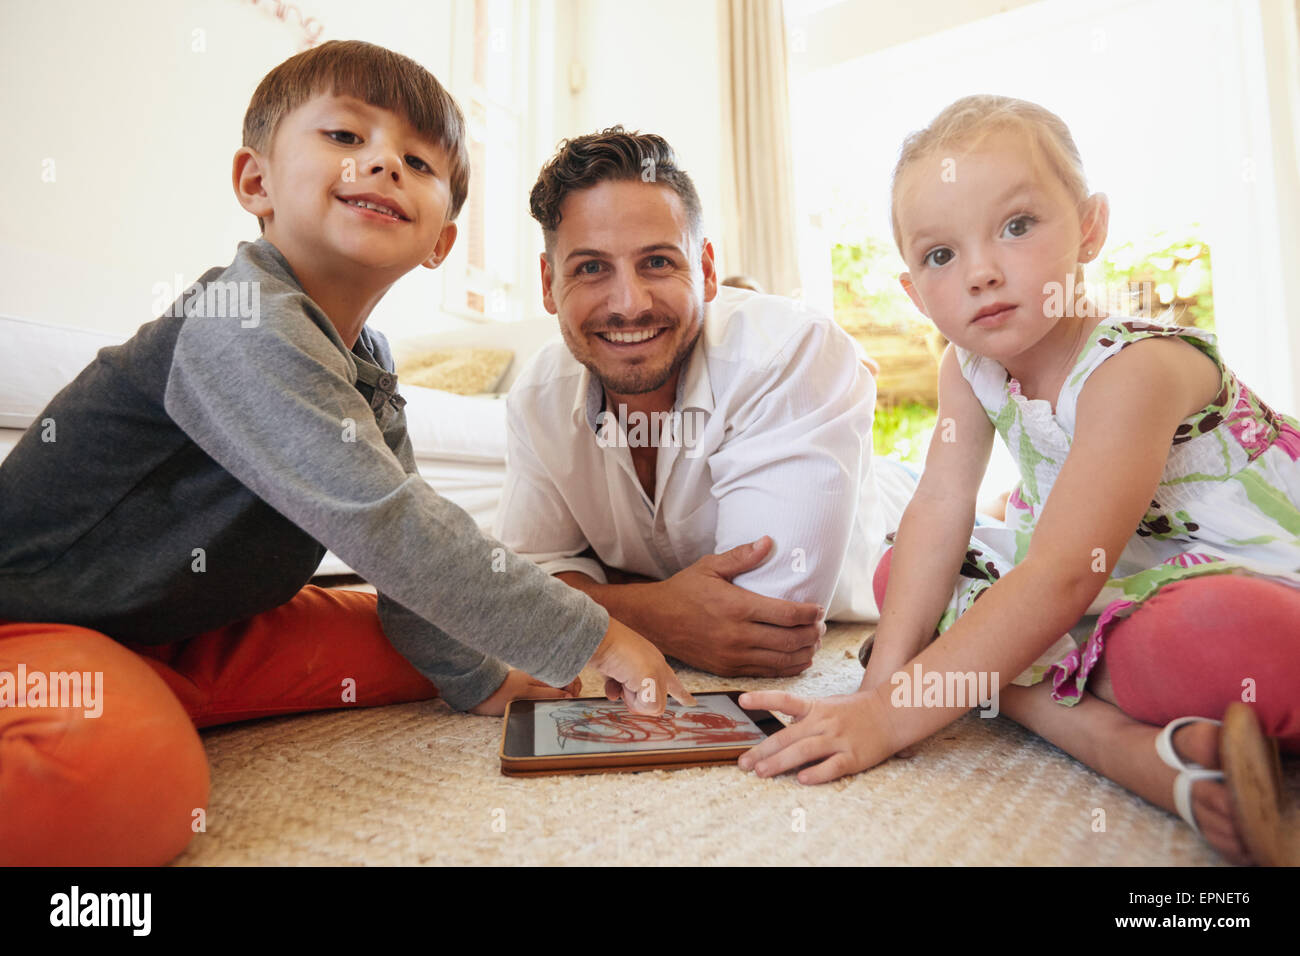 Family sitting on floor using digital tablet looking at camera smiling. Father with son and daughter playing with - Stock Image